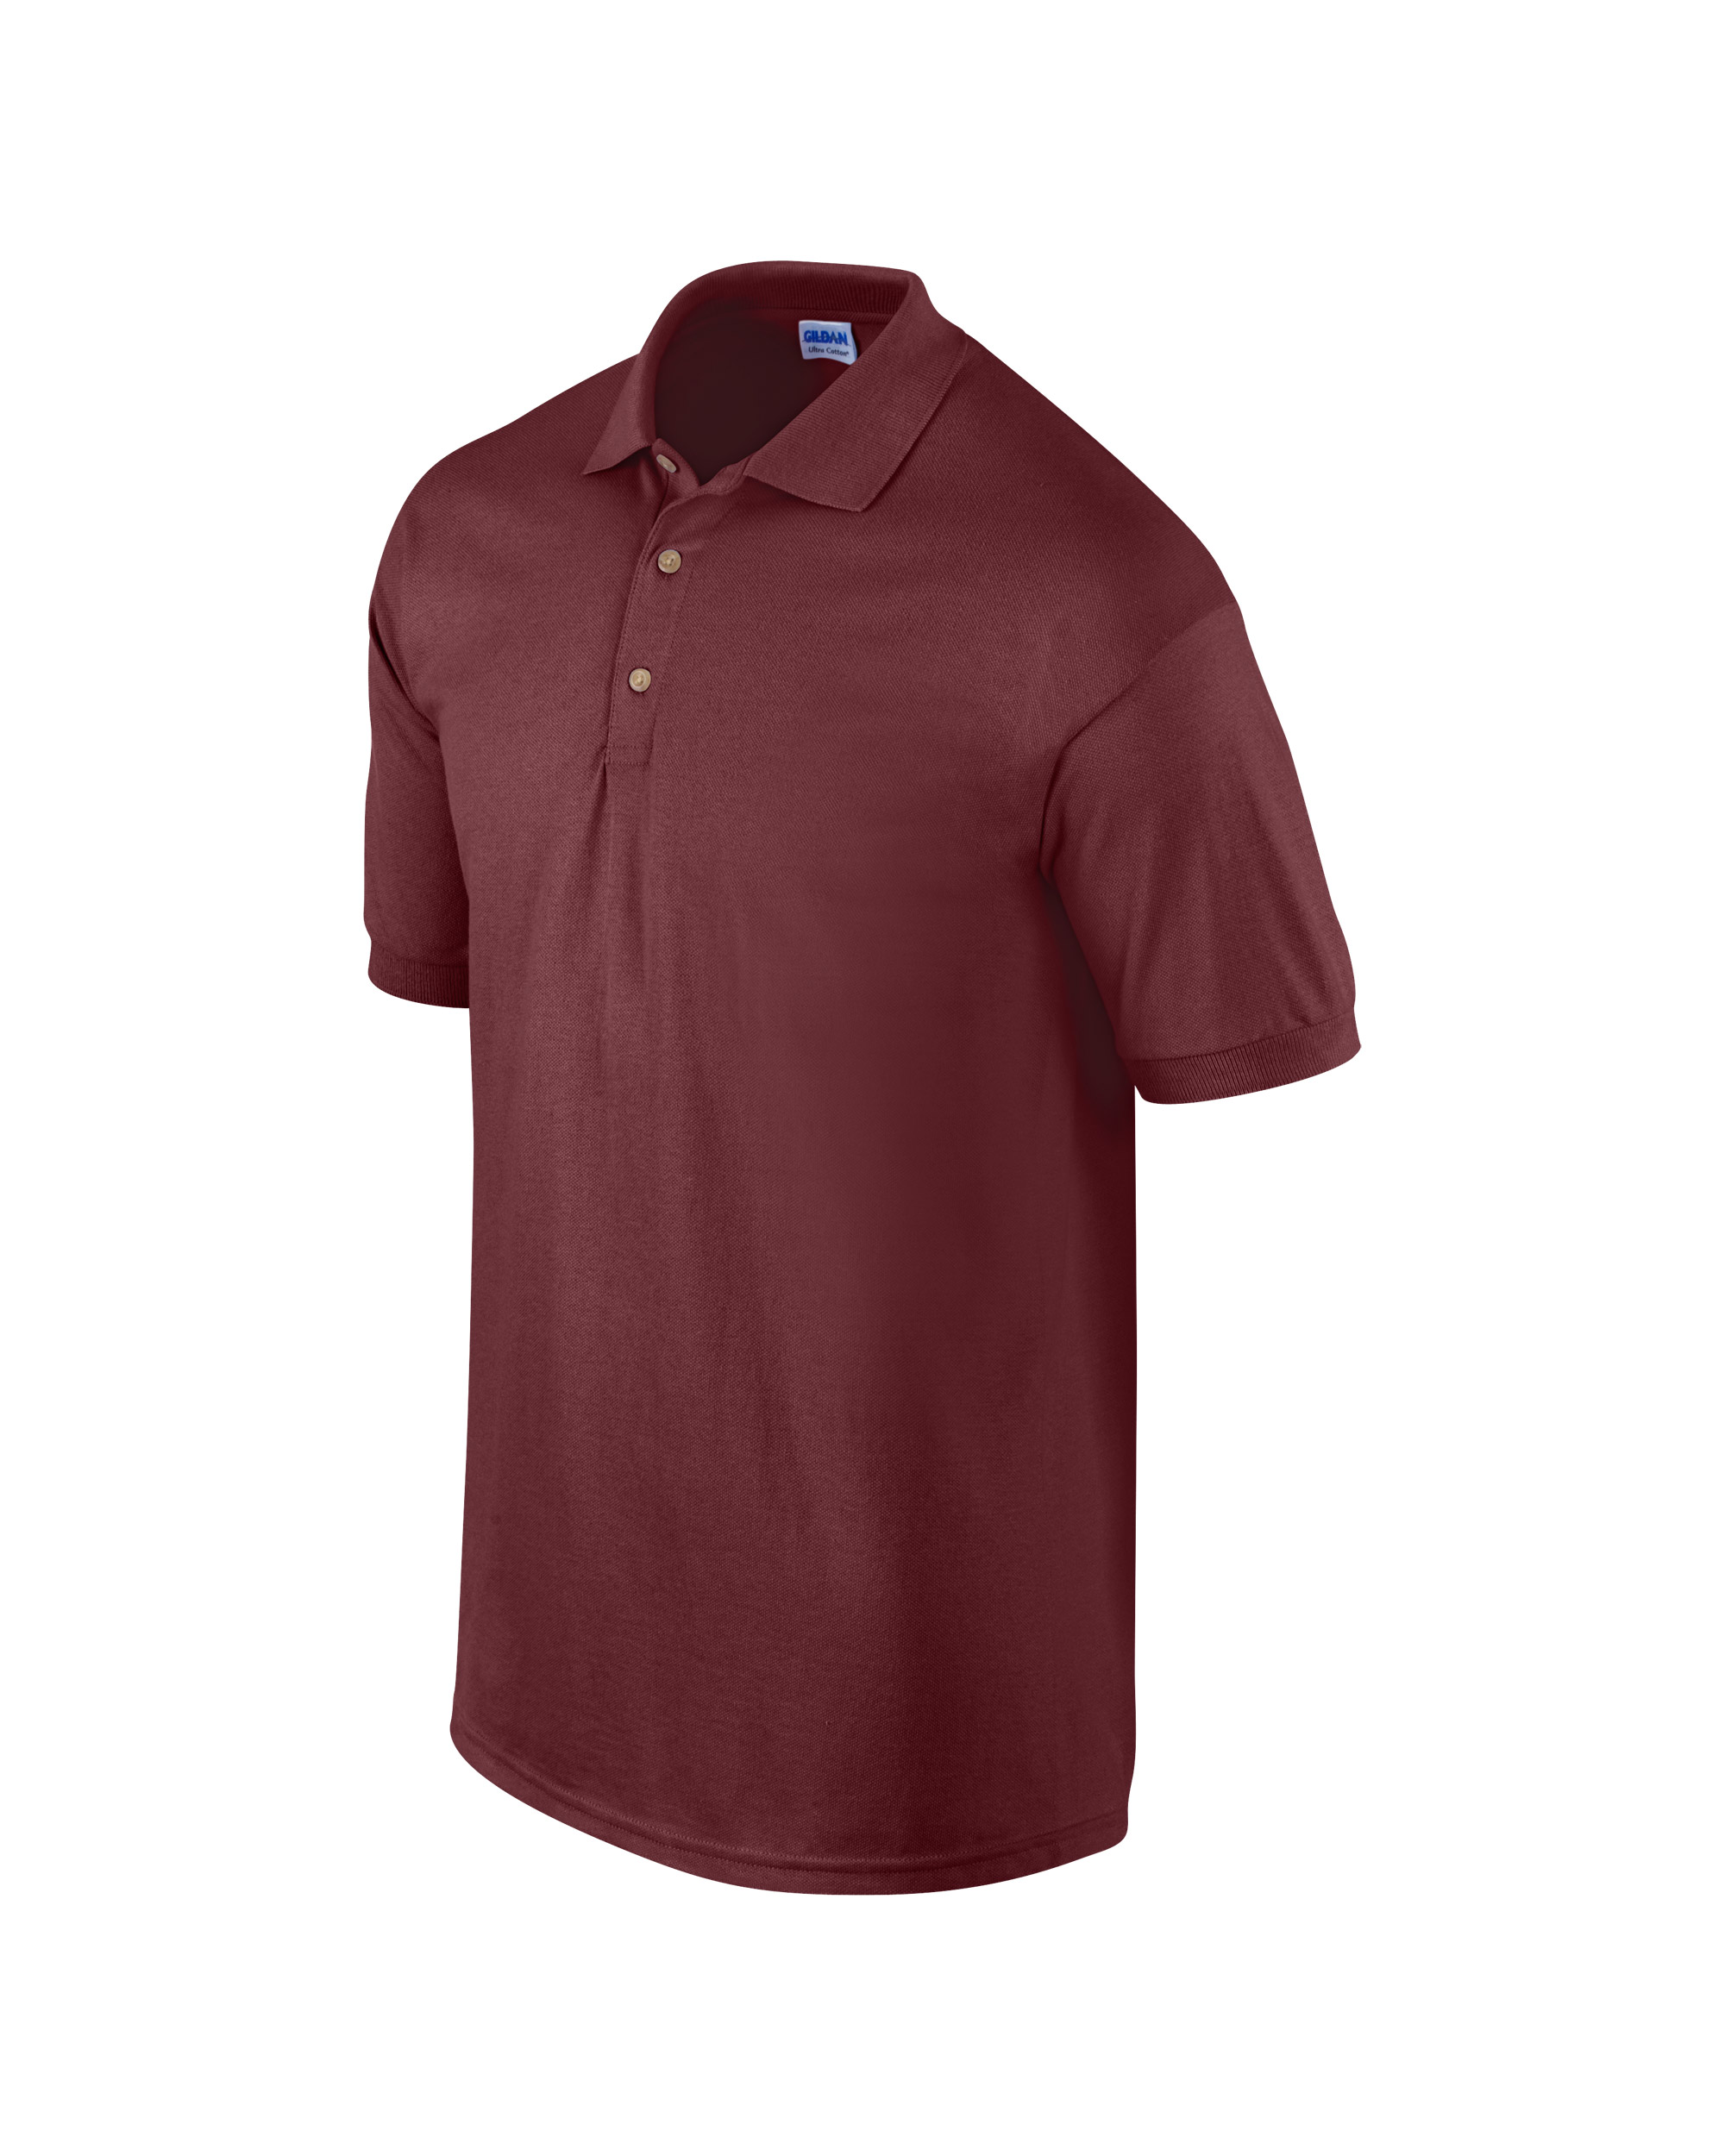 Gildan Ultra Cotton Adults Pique Polo Maroon 3xl T Shirt